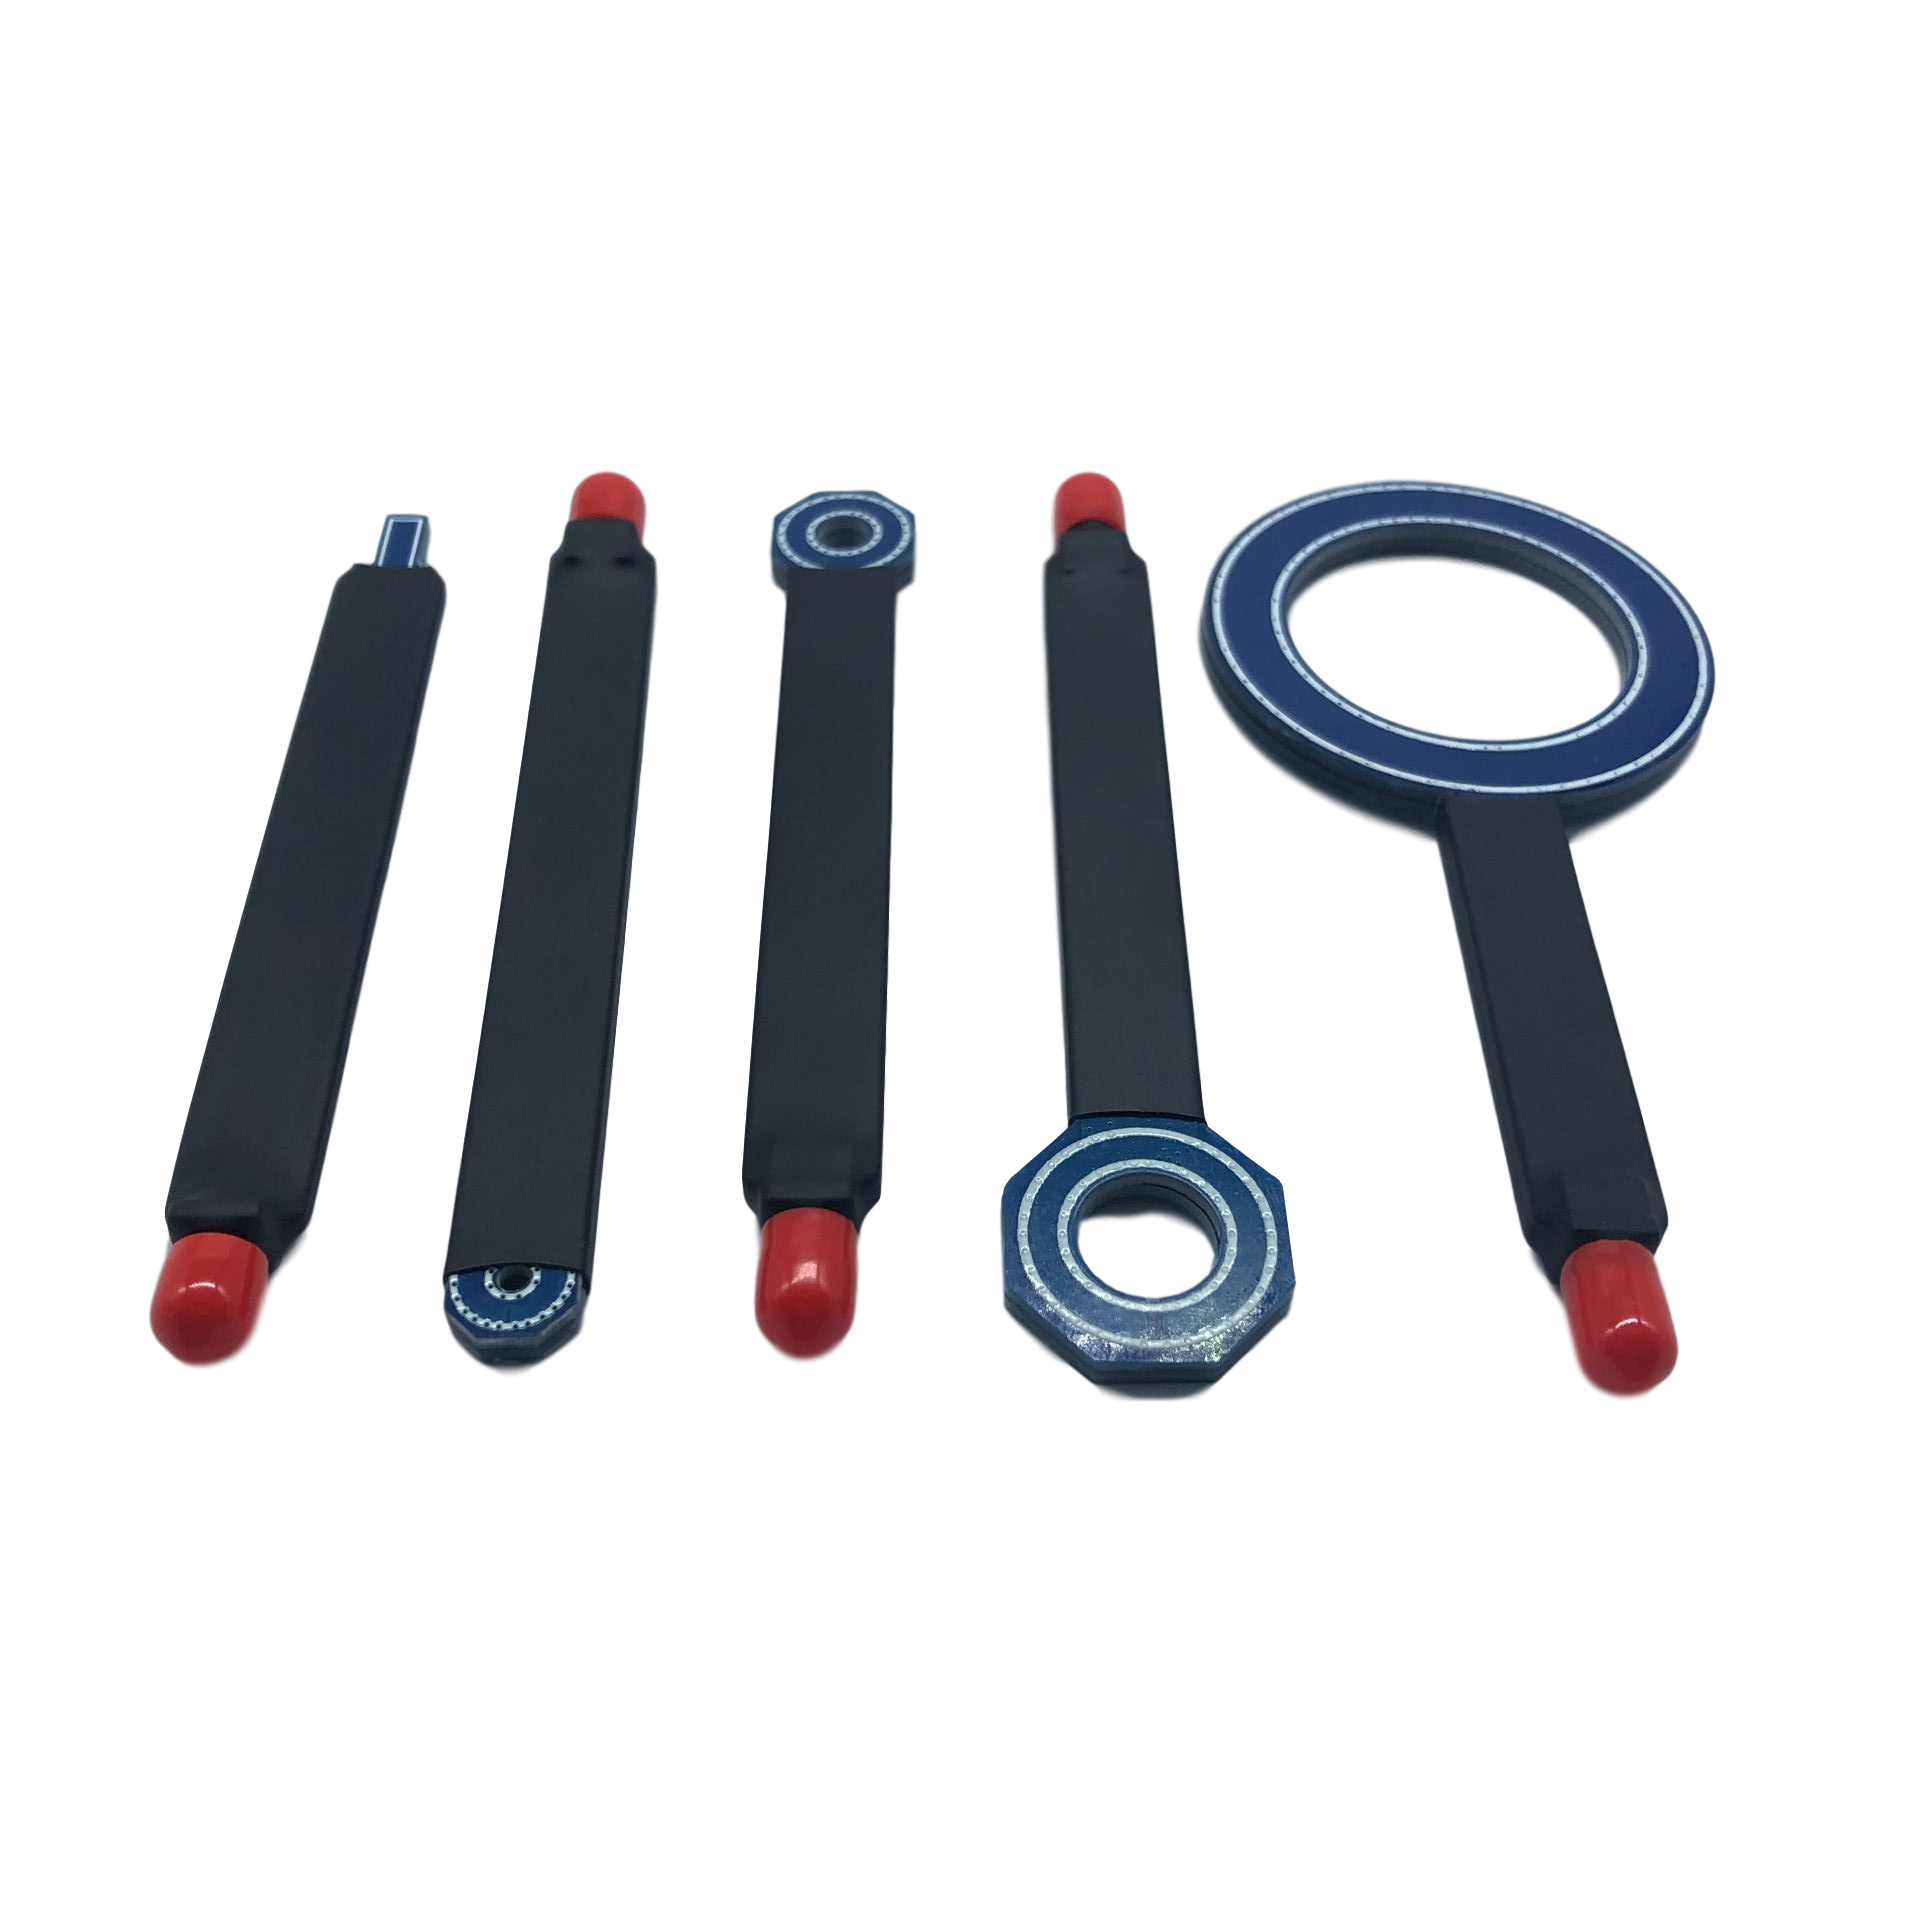 5pcs Simple  Field Probe Tools 9khz-7ghz For Space Conducted  Radiation Rectification  Correction 7GHZ